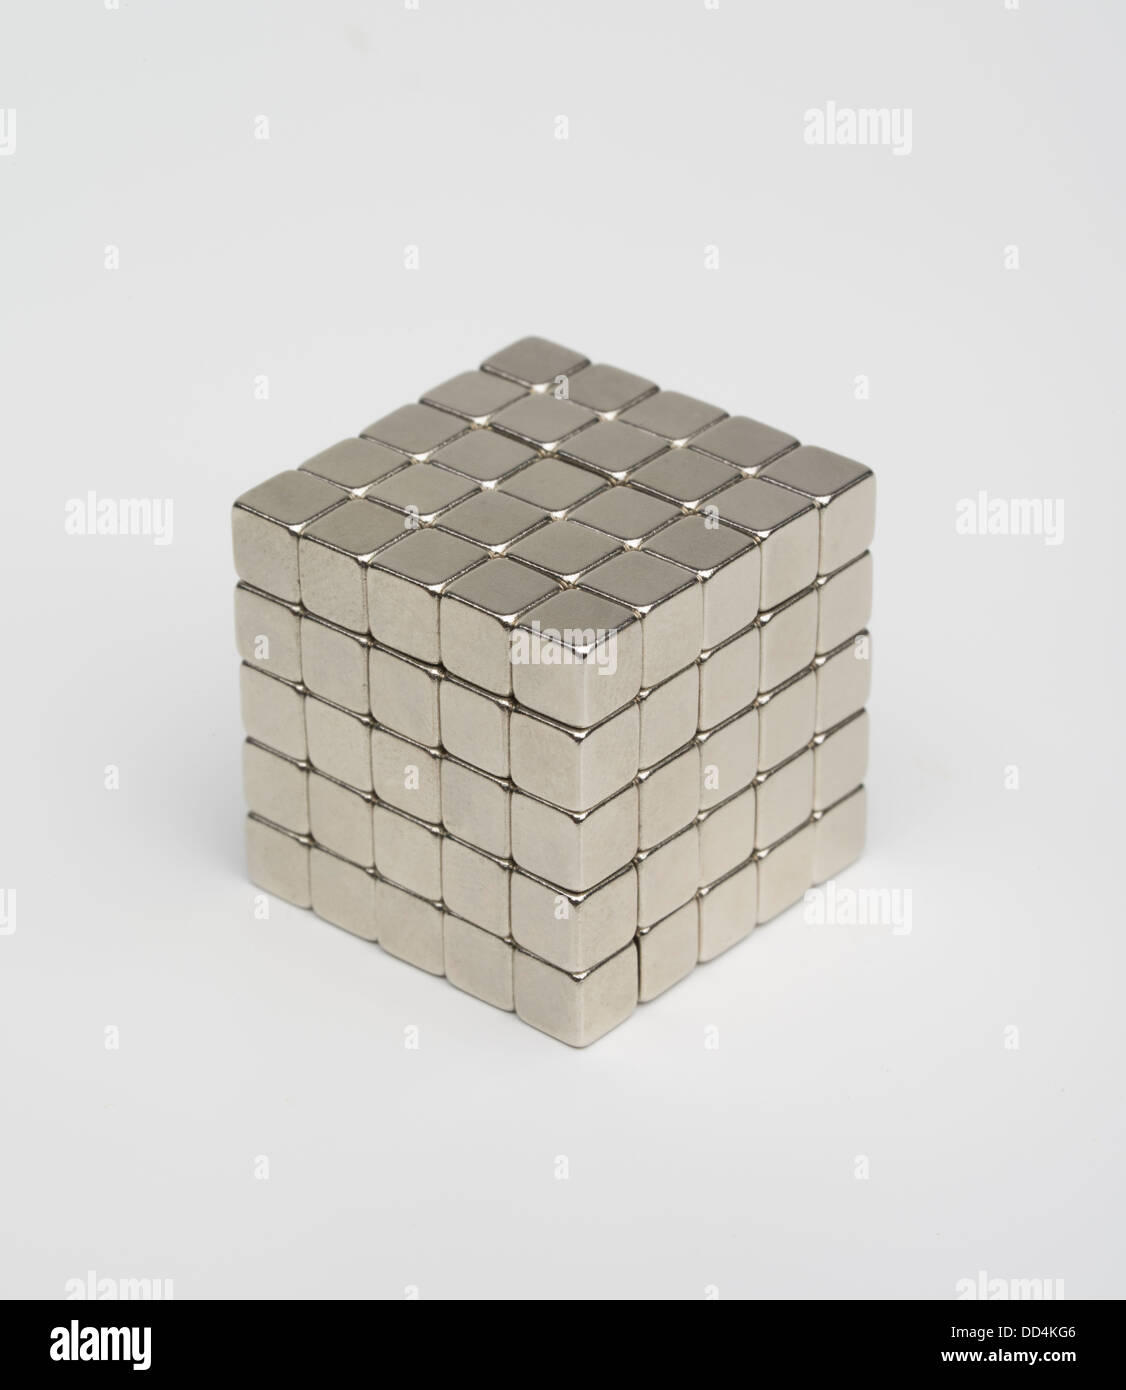 Neodymium magnet educational toy. Nickel-plated magnetic cubes. Toys banned in the US due to cases of children swallowing - Stock Image